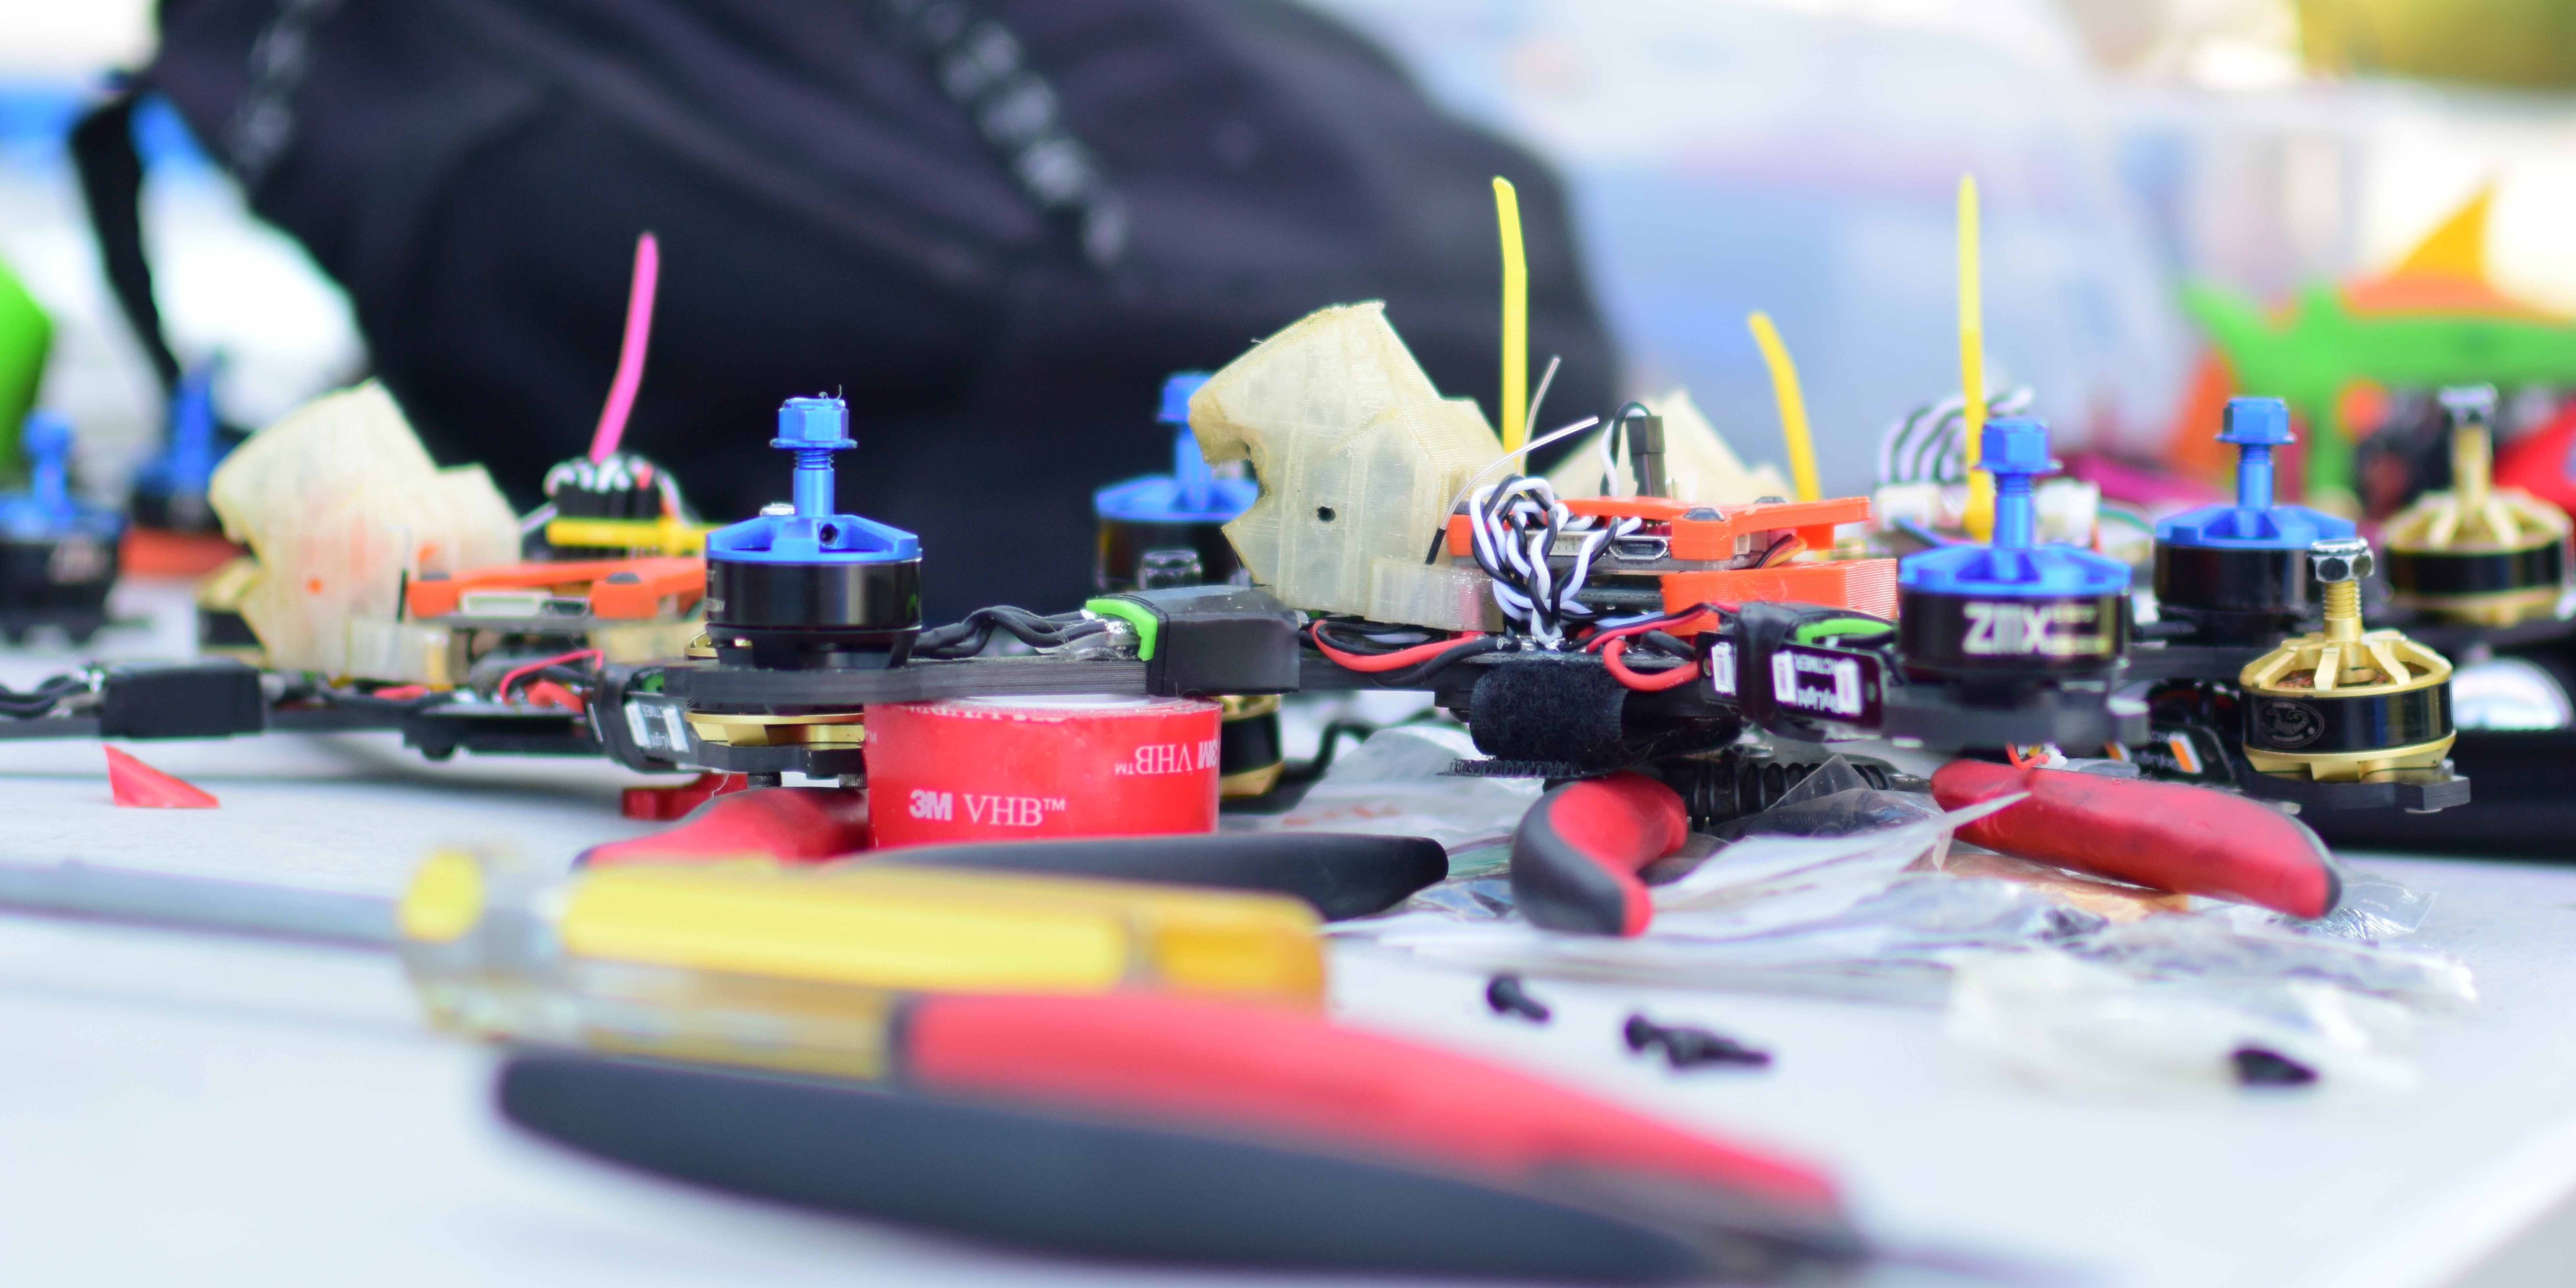 The price of a racing drone varies.